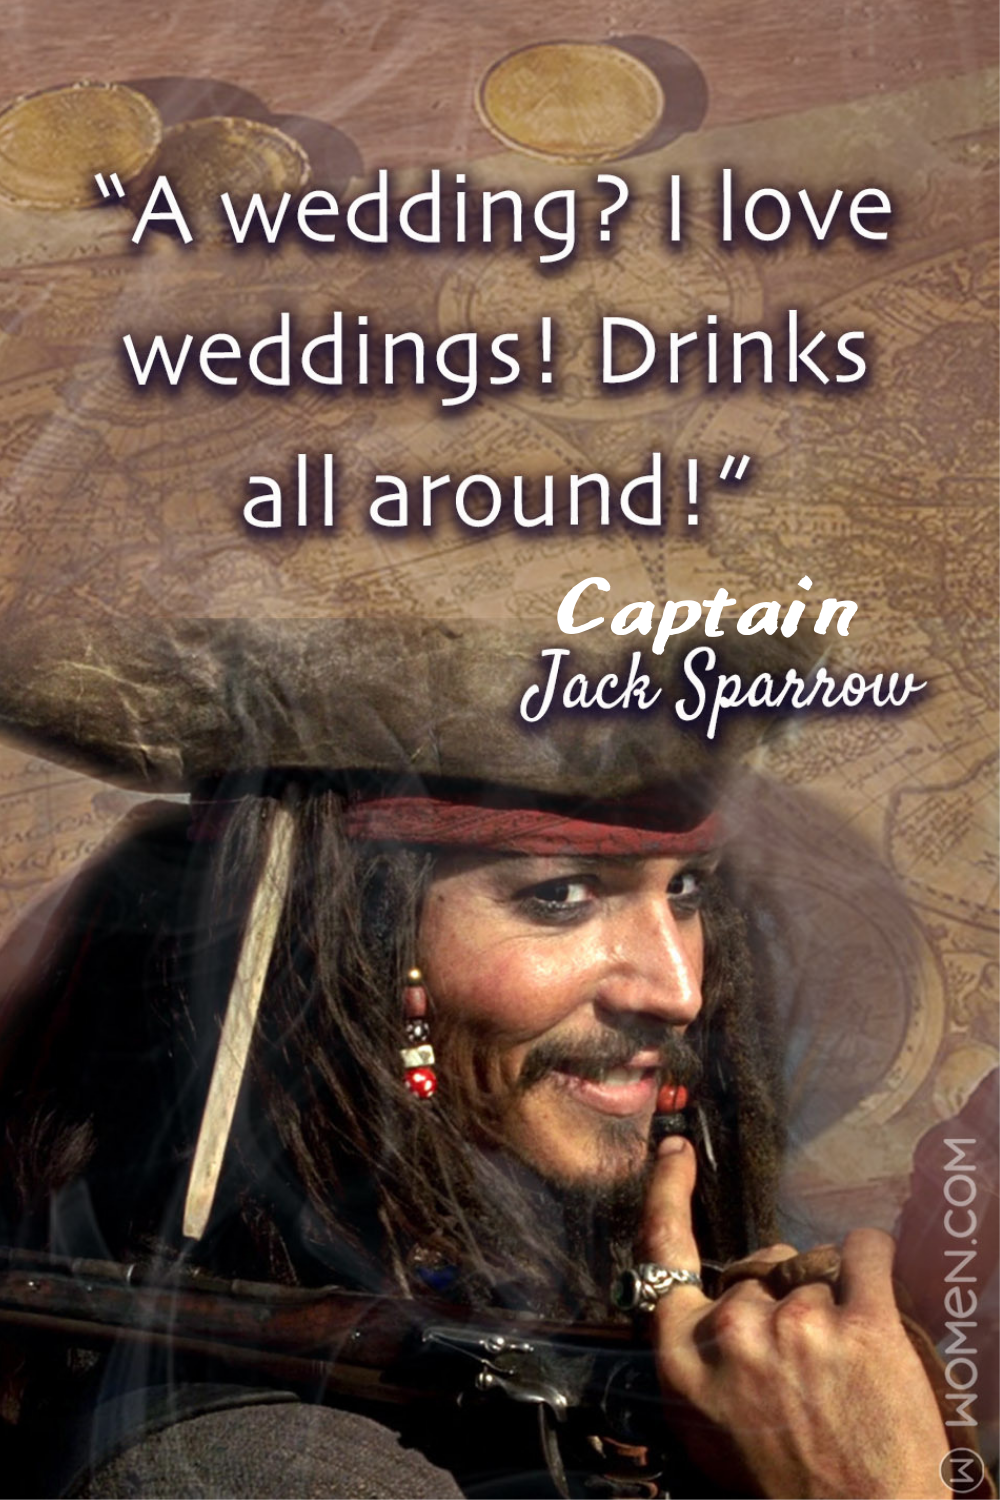 15 Captain Jack Sparrow Quotes That Every Pirate Should Live By Captain Jack Sparrow Quotes Jack Sparrow Quotes Captain Jack Sparrow